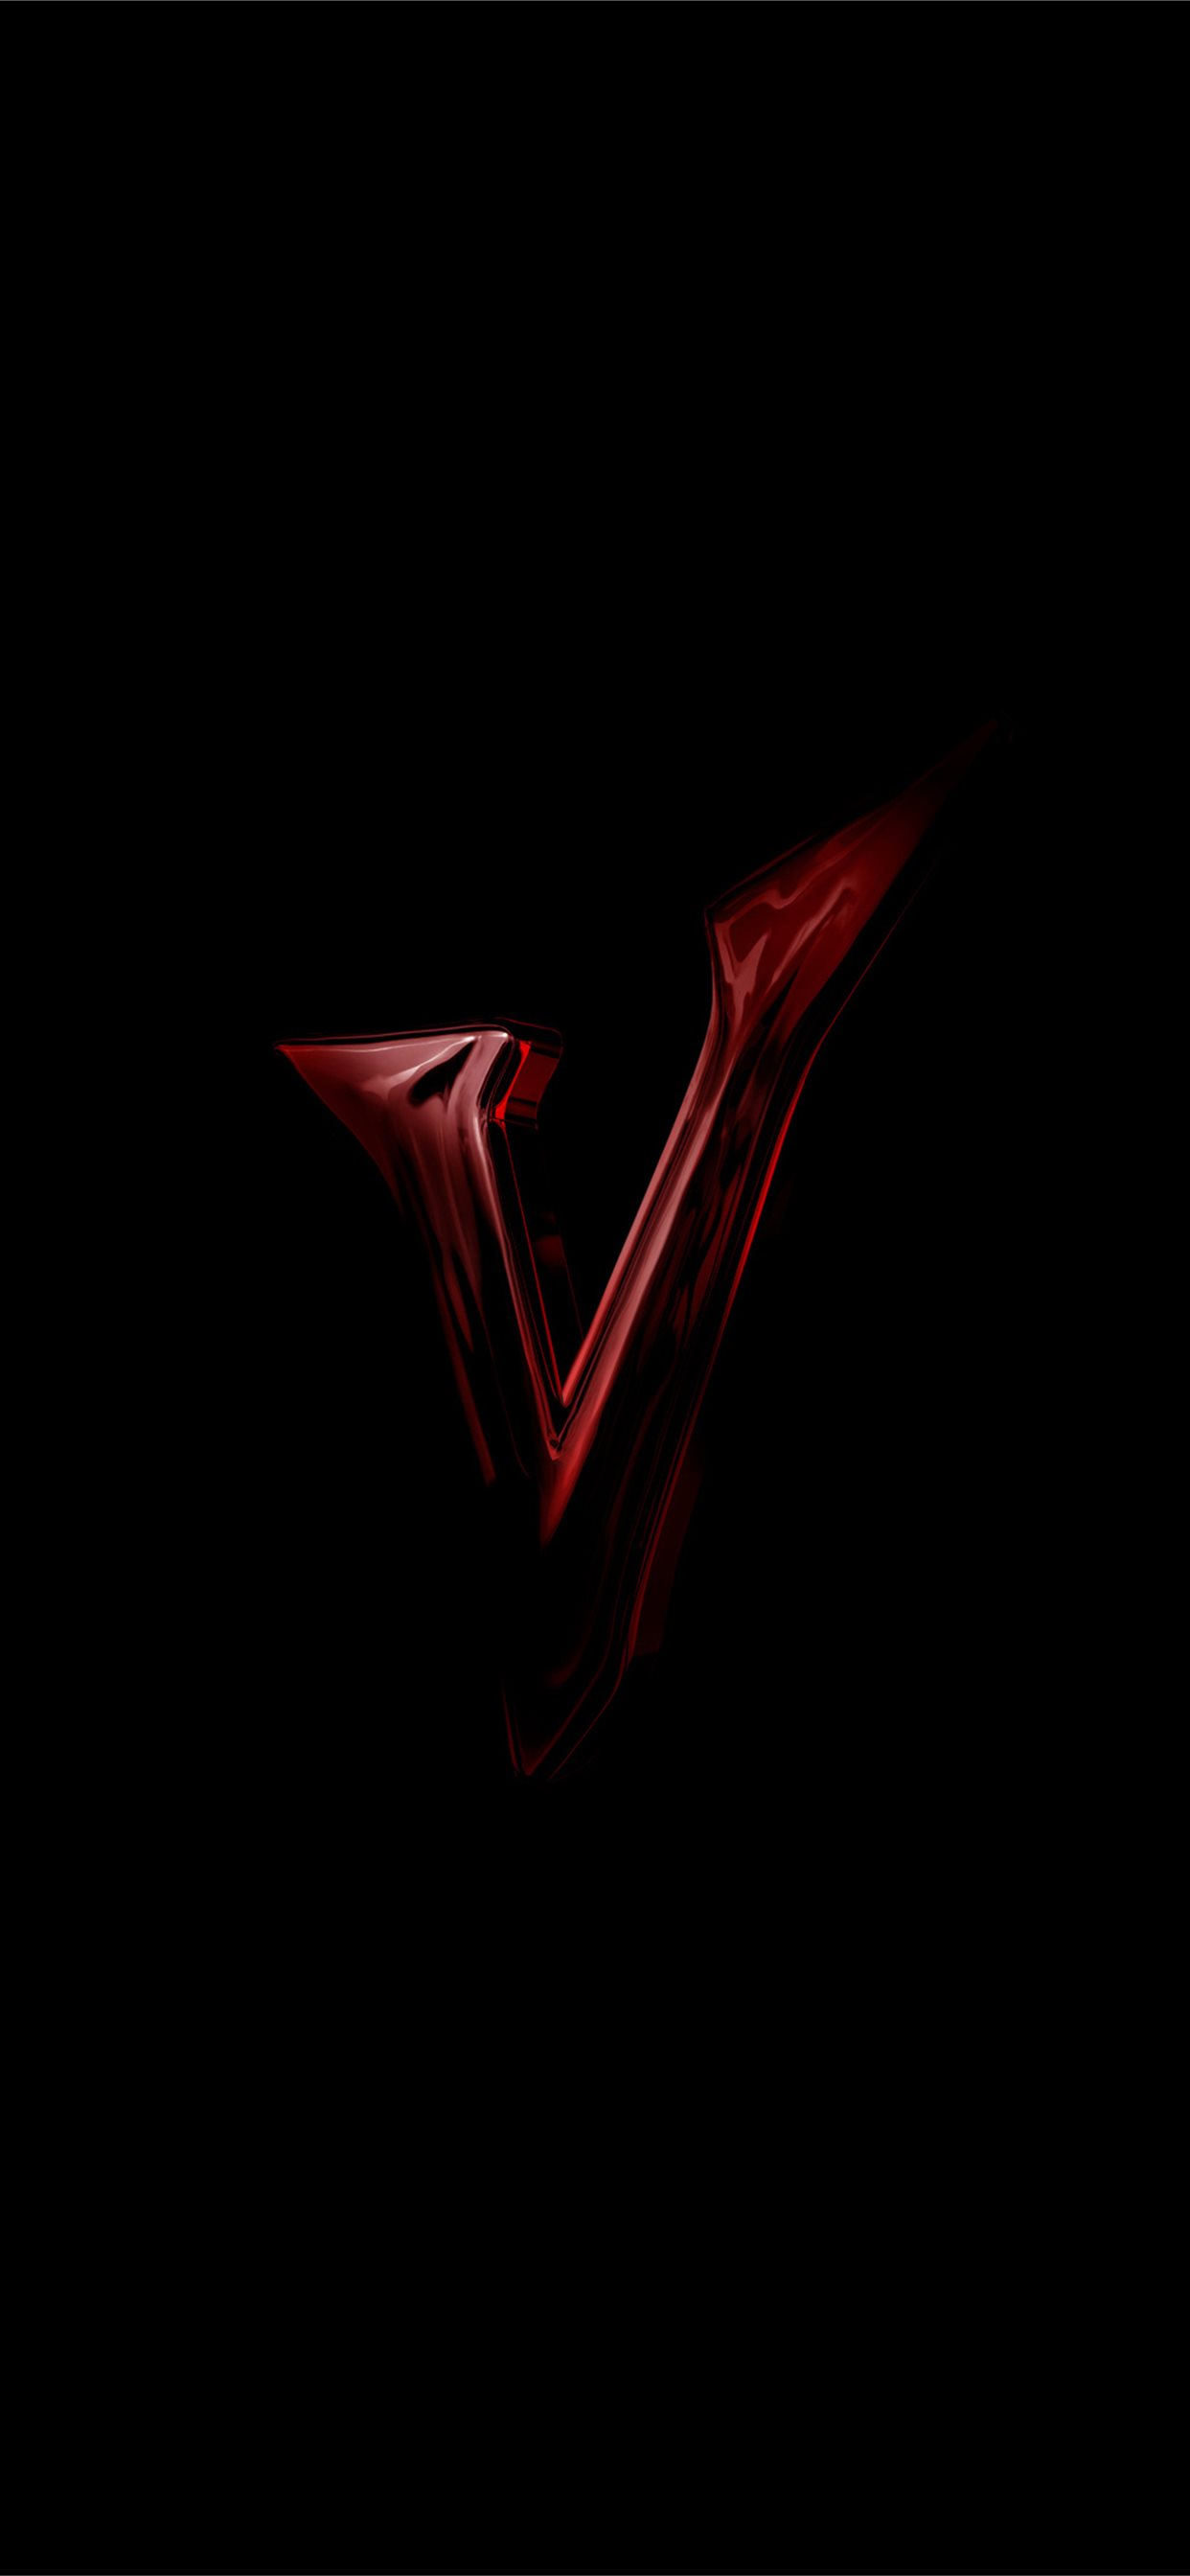 venom let there be carnage logo iphone xs max wallpaper